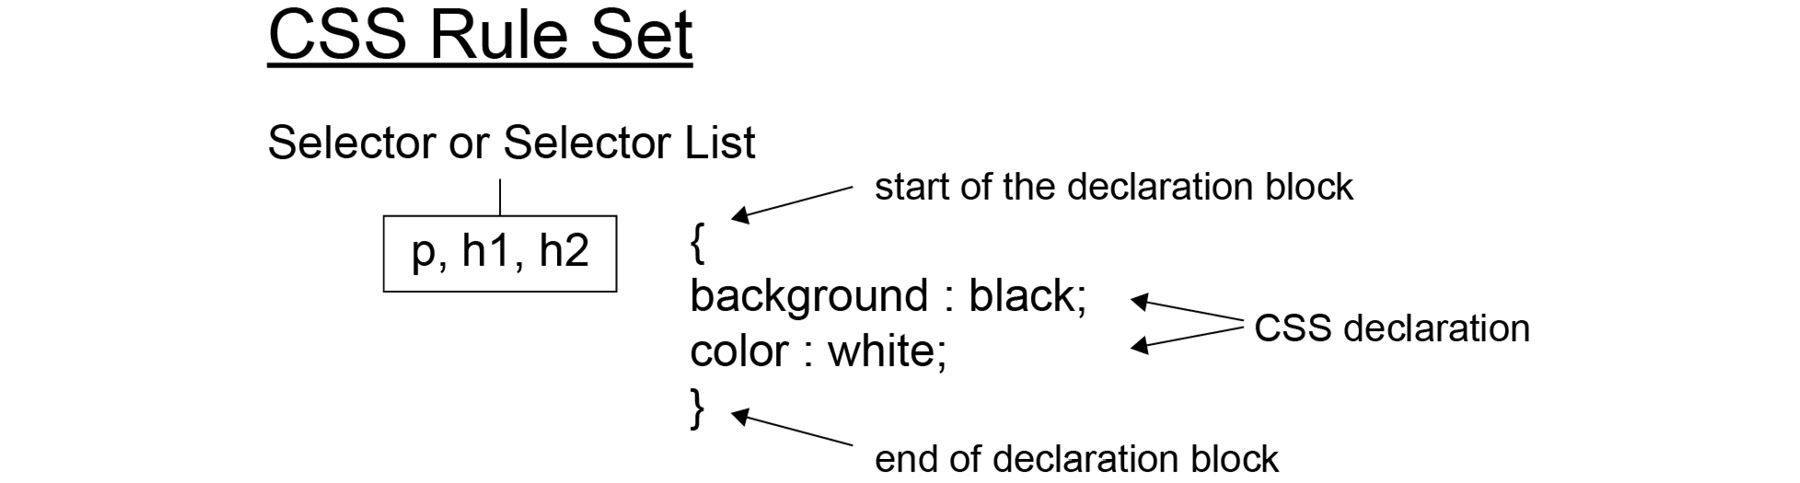 Figure 1.20: A CSS ruleset explained